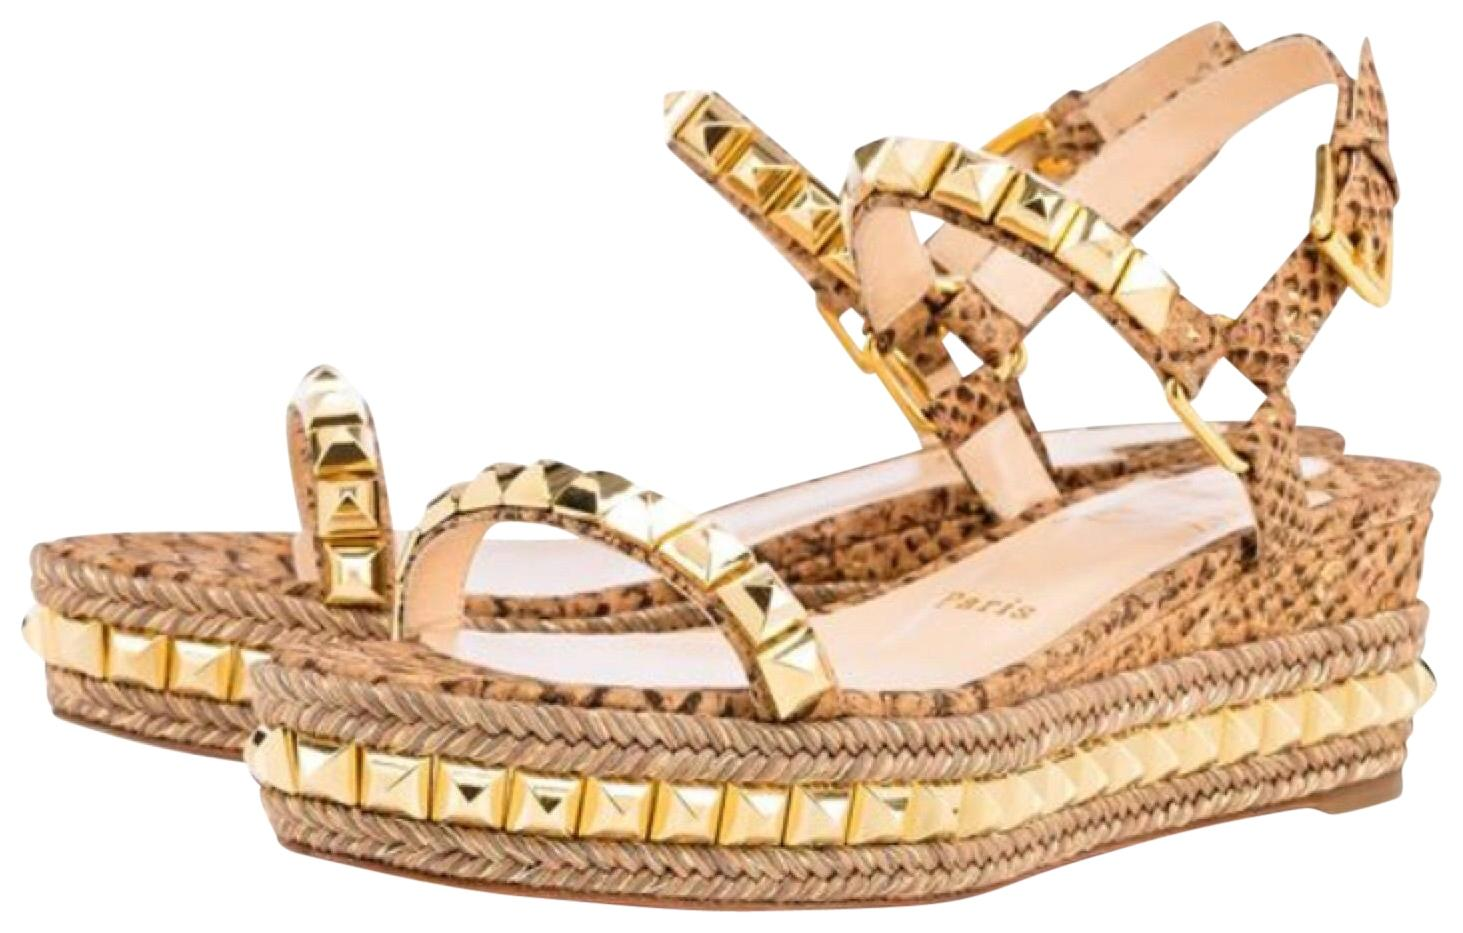 635871c3023 ... promo code for christian louboutin studded cataclou platform encore tan  sandals 4f513 facd0